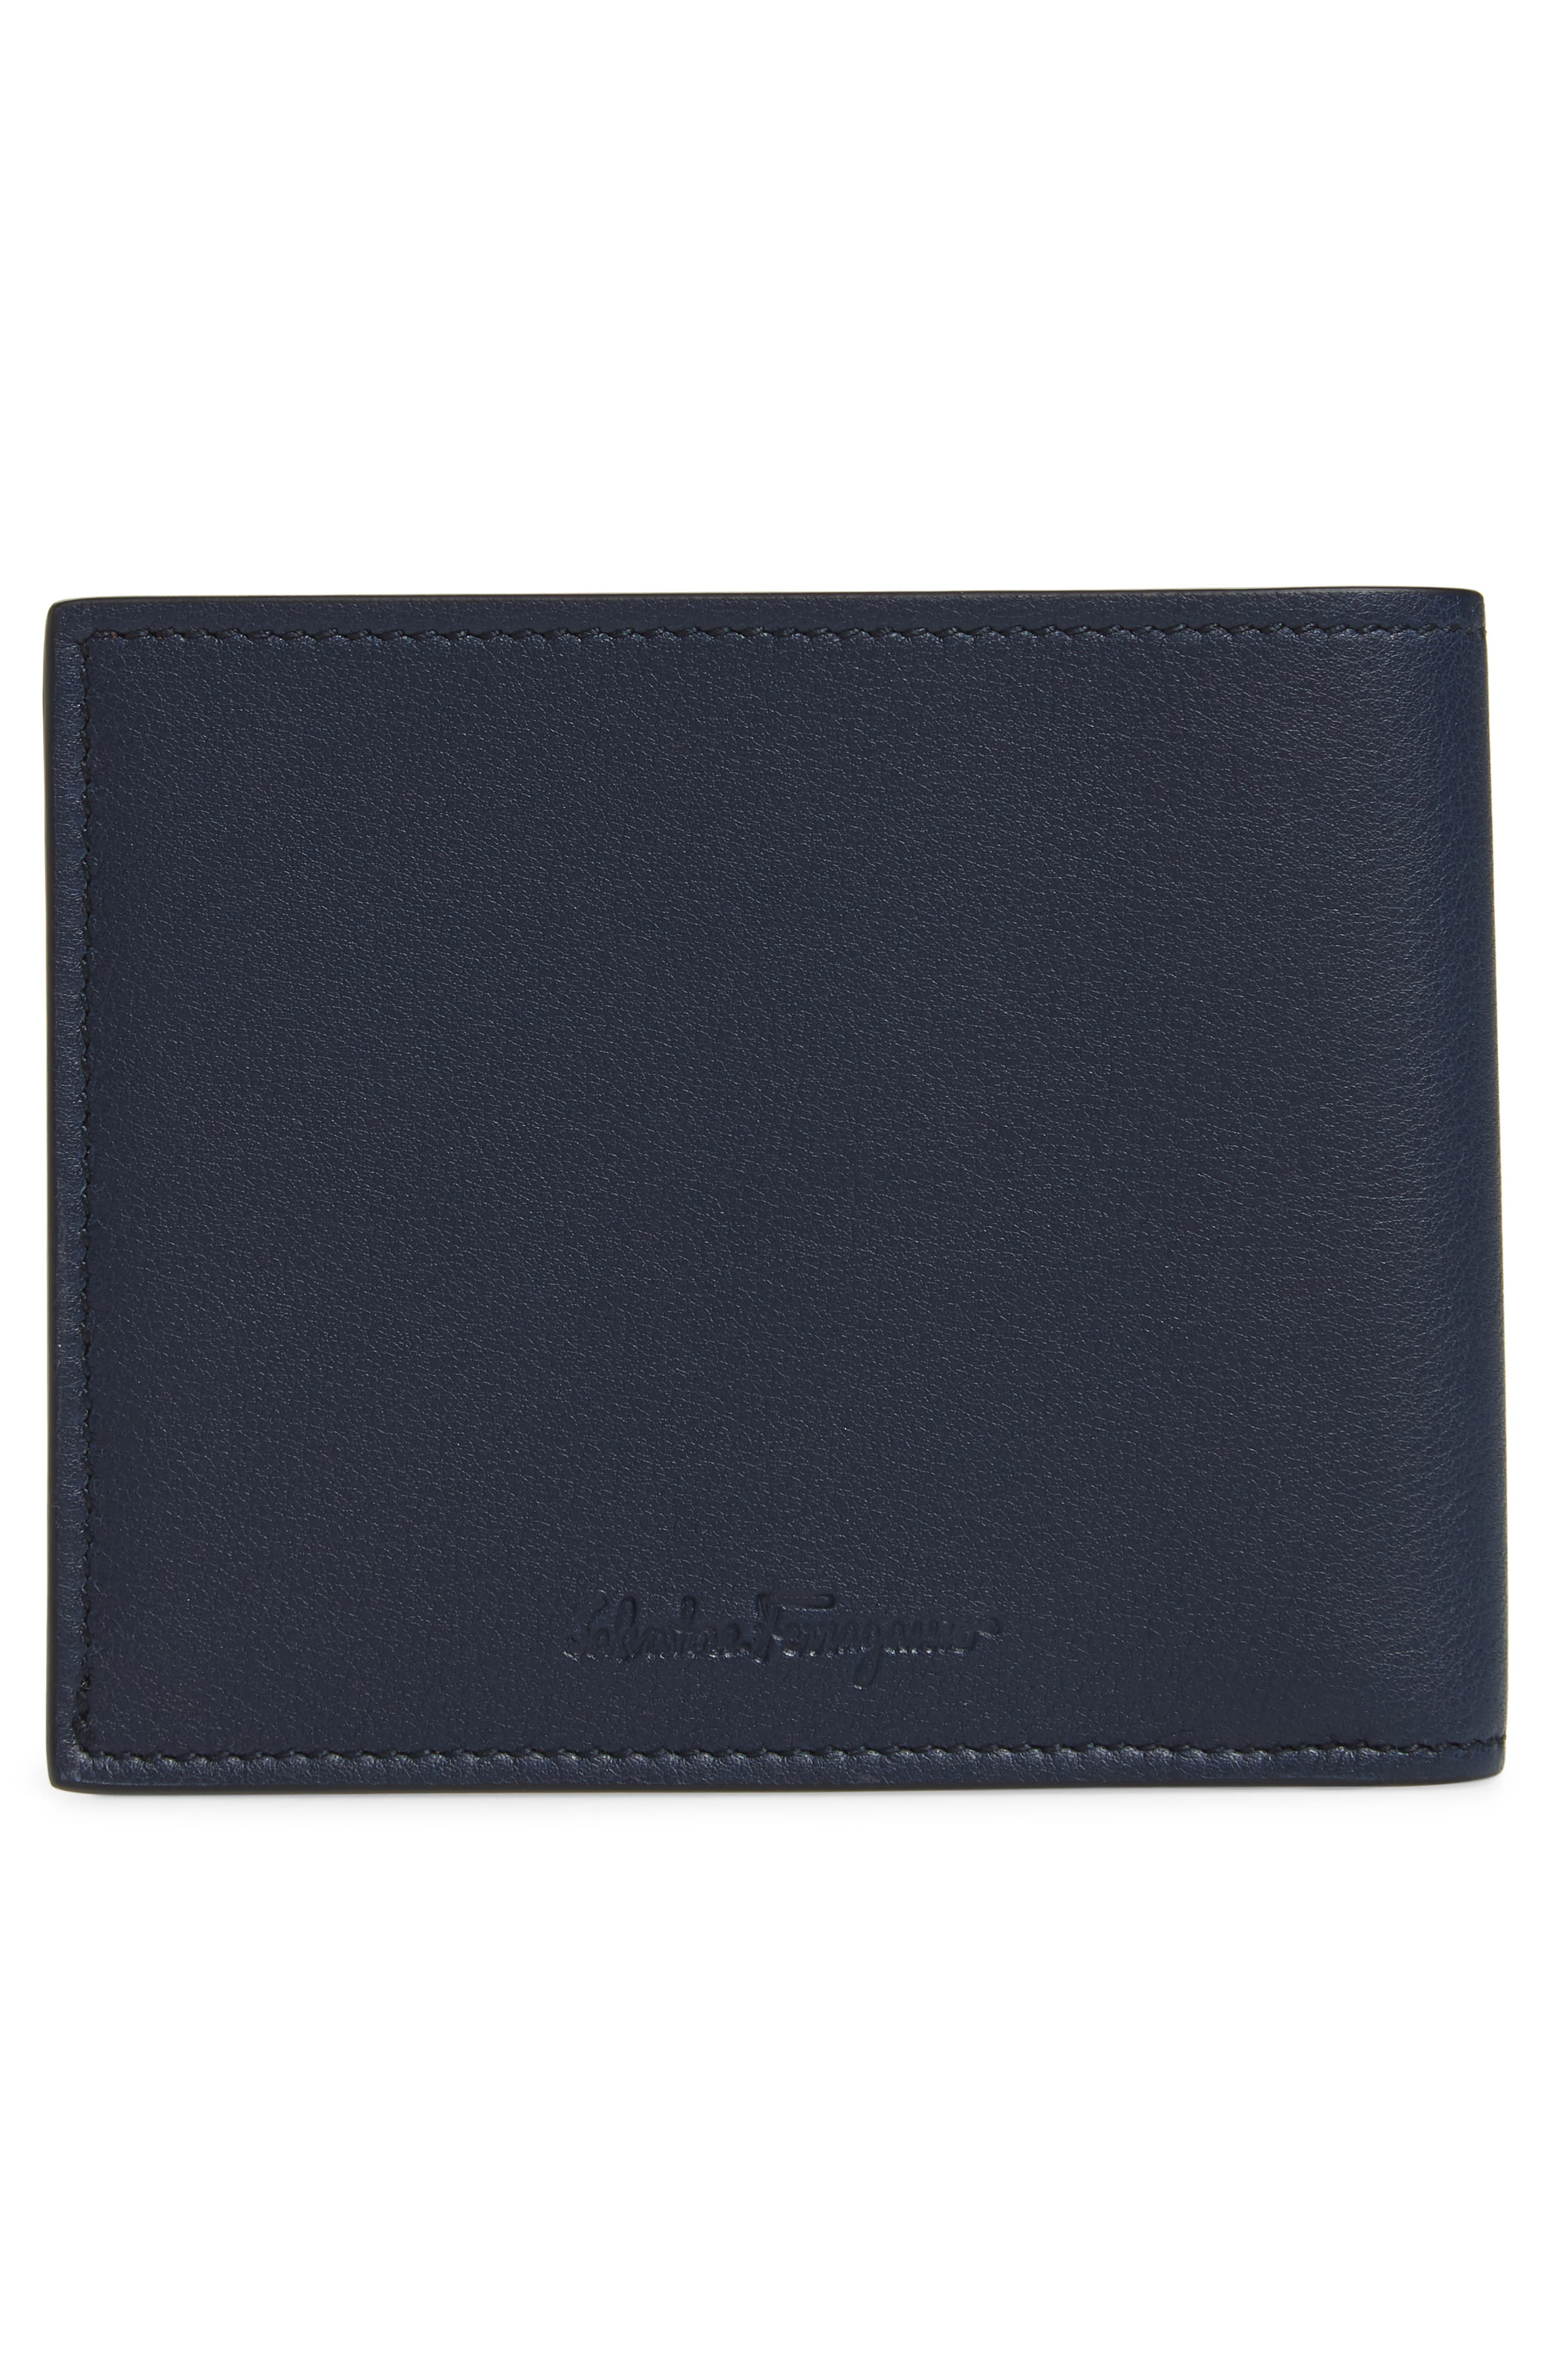 Carne Chinese New Year Studded Leather Wallet,                             Alternate thumbnail 3, color,                             Navy